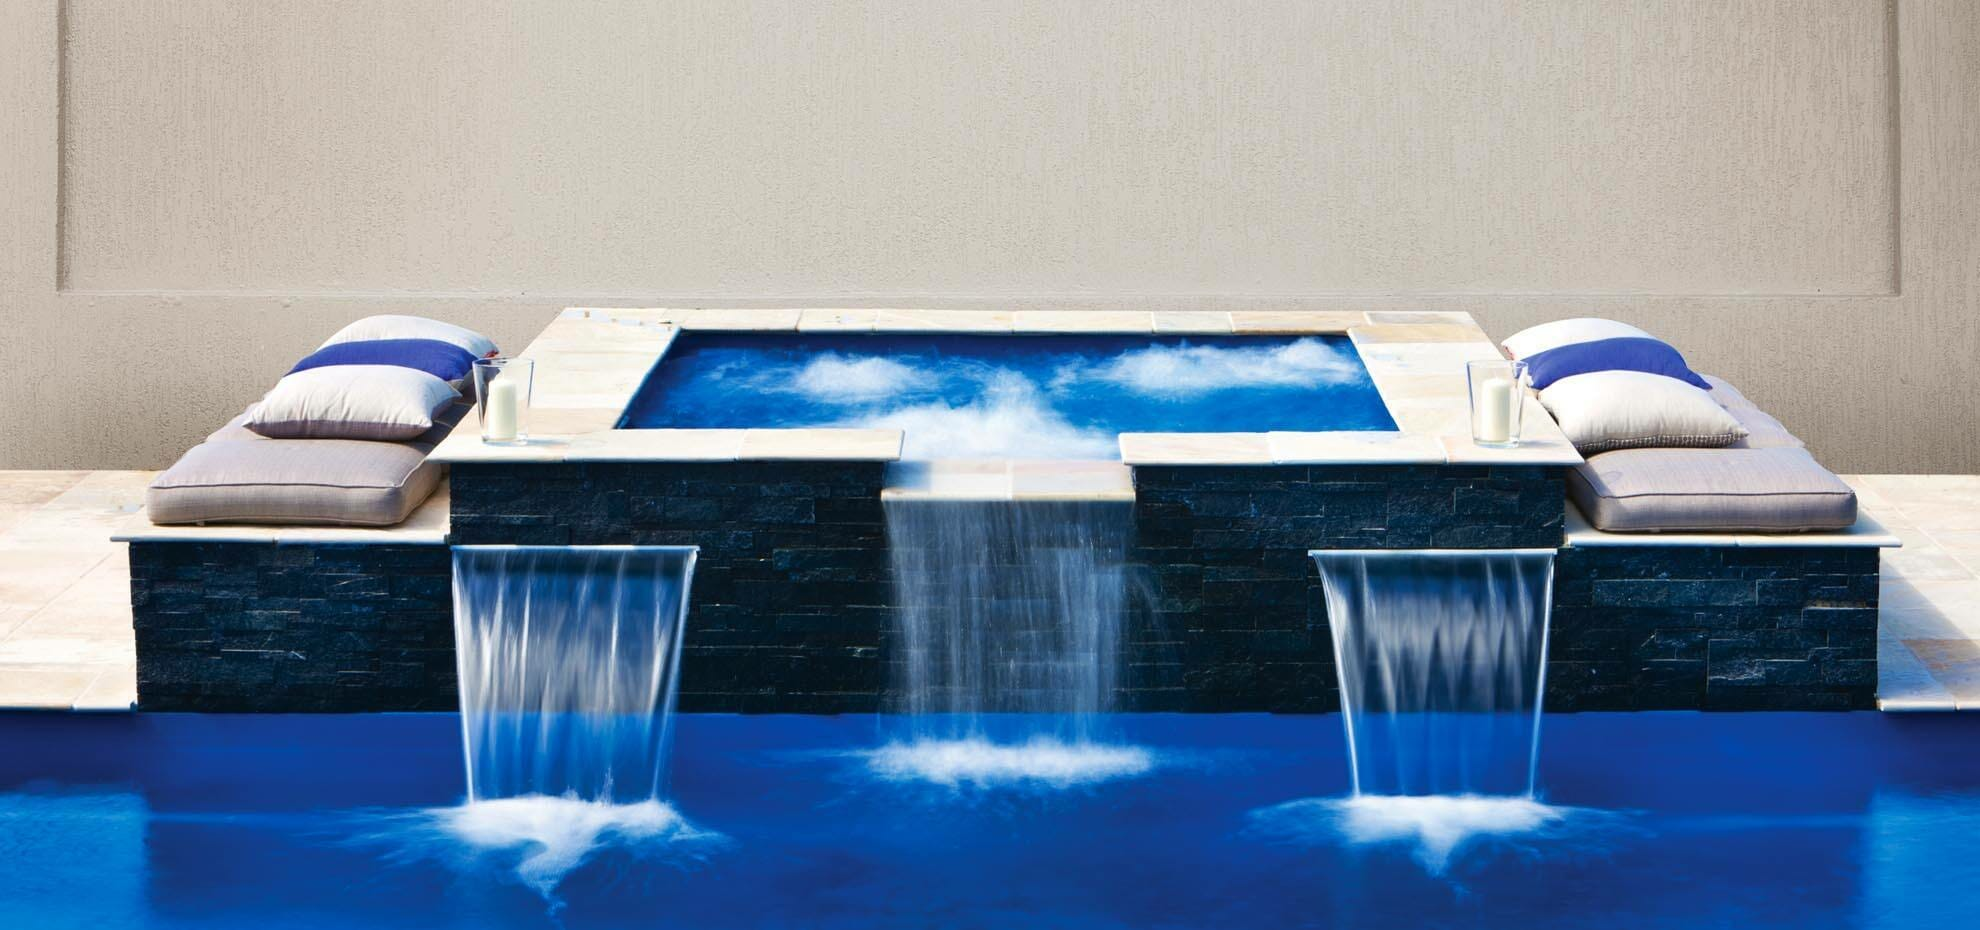 Sorrento Fiberglass pool with water feature by Leisure Pools